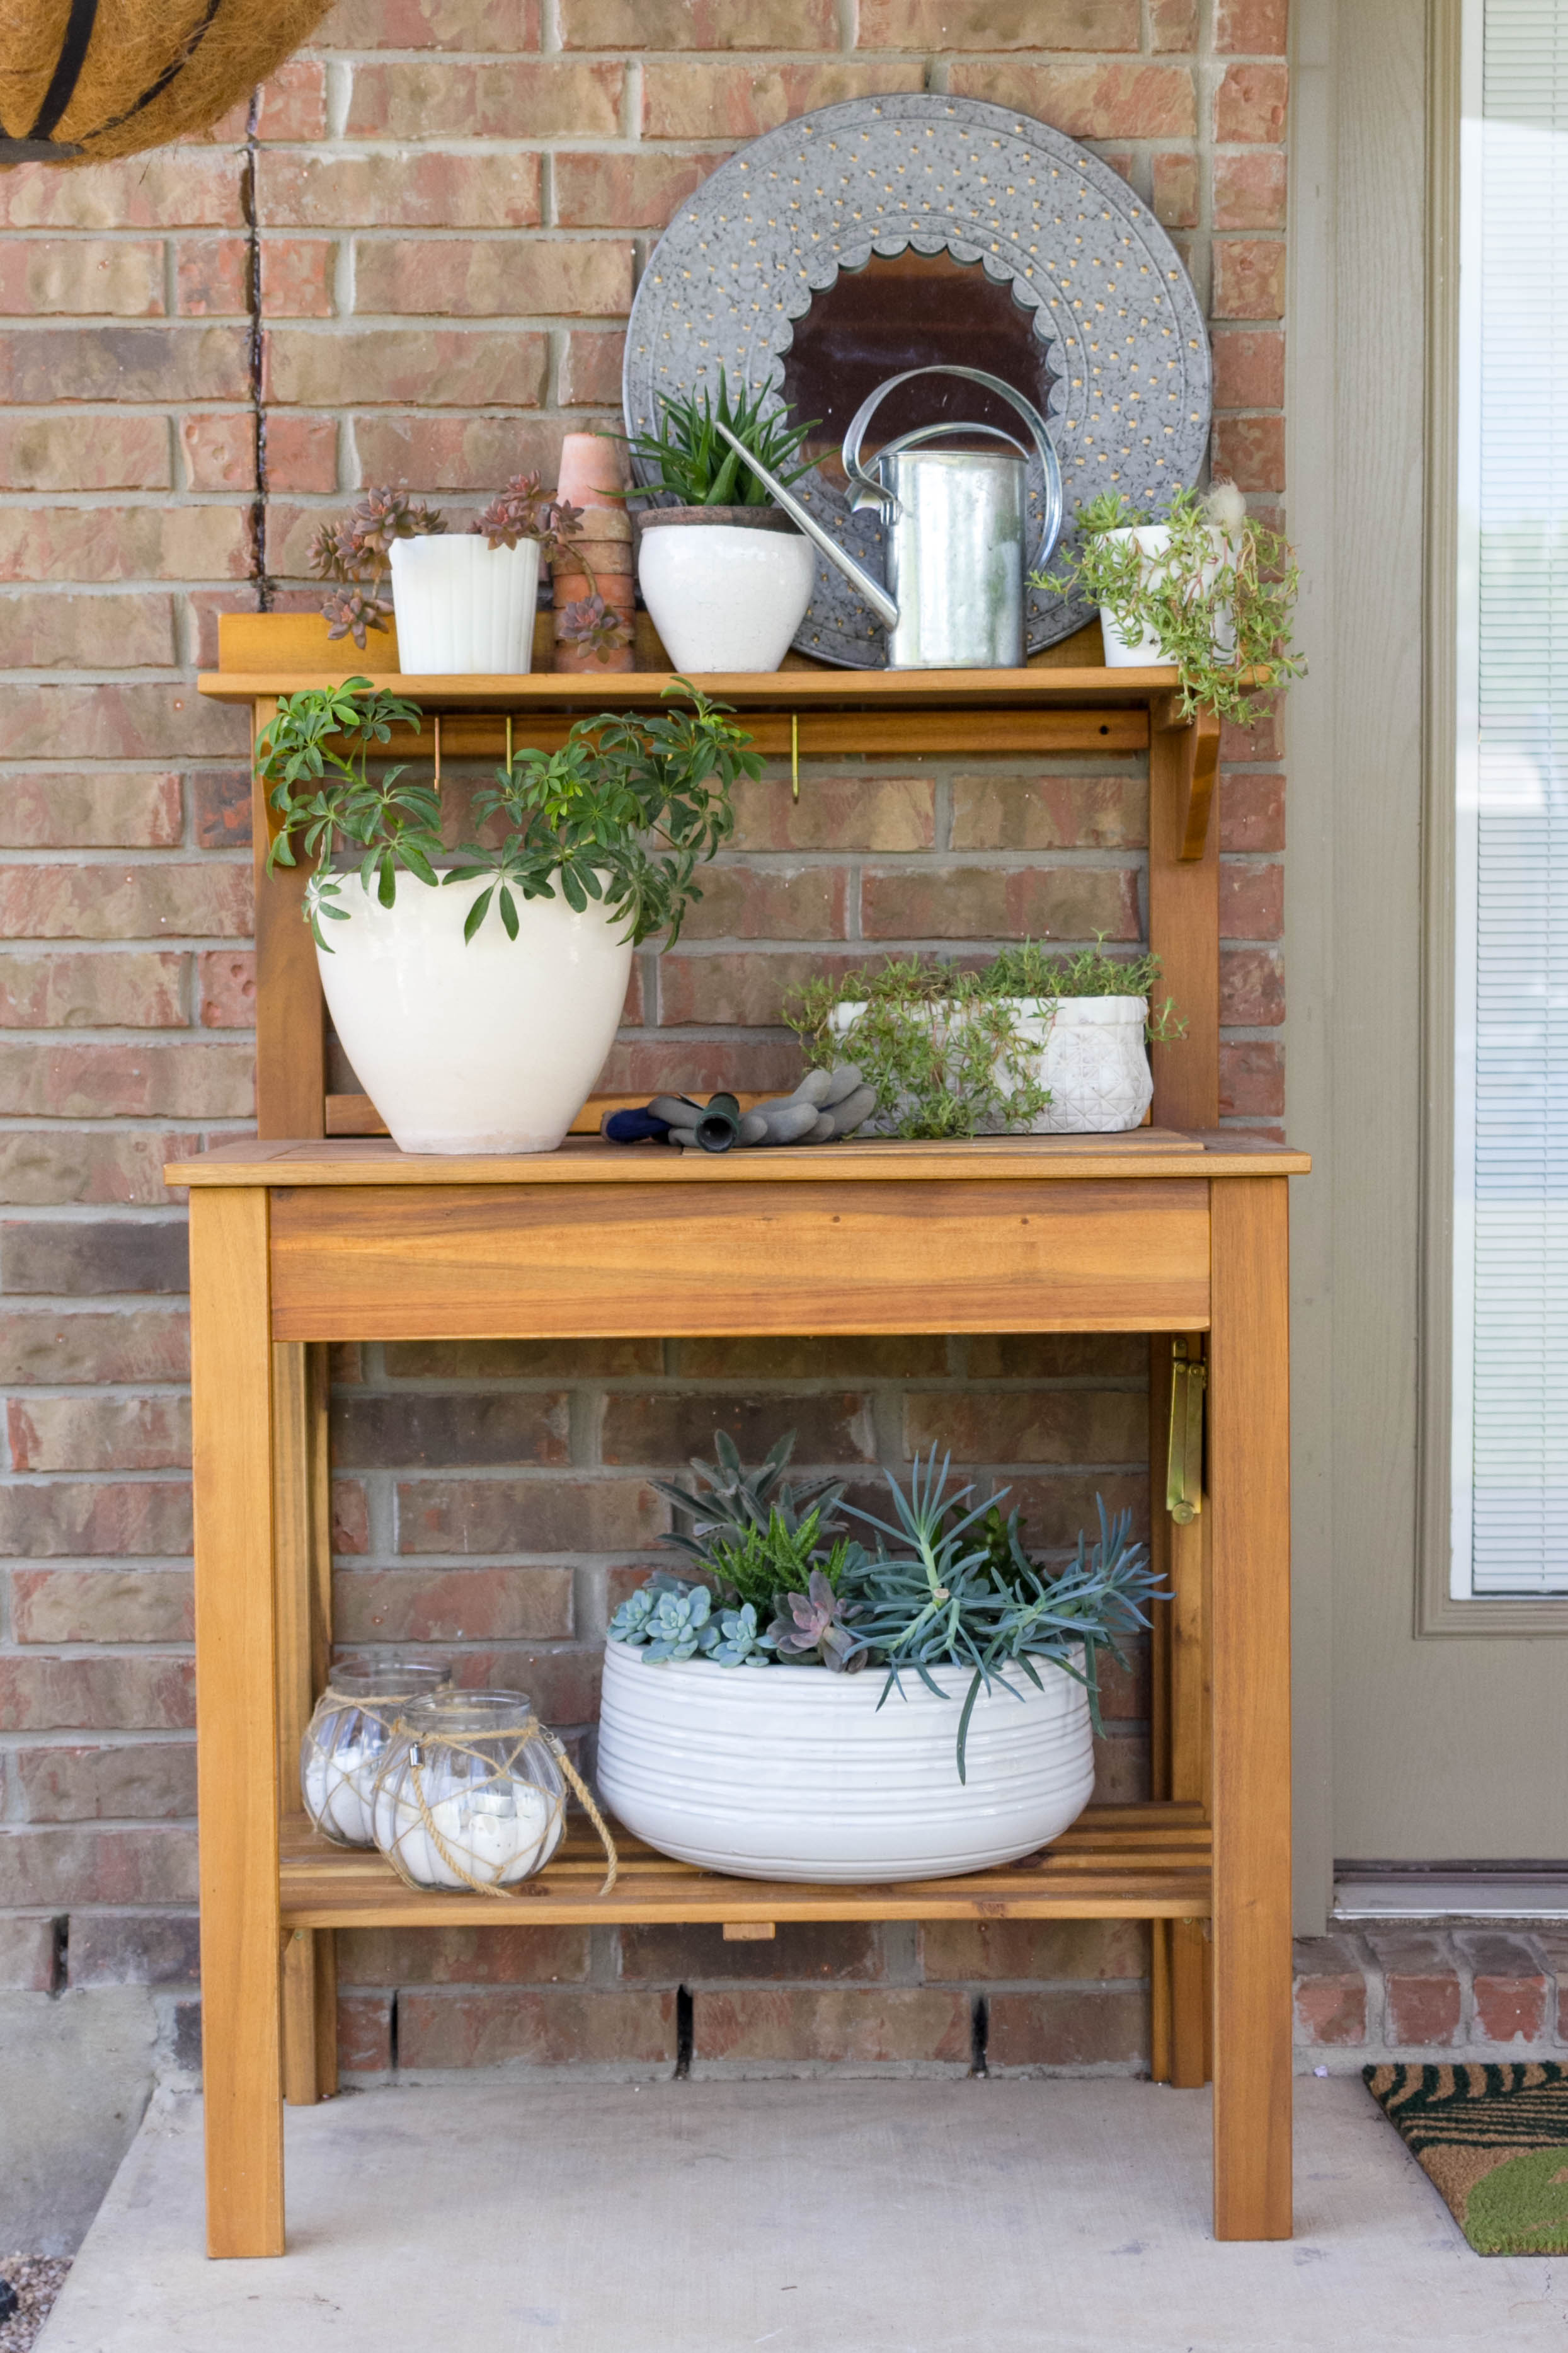 World Market Potting Bench on Patio